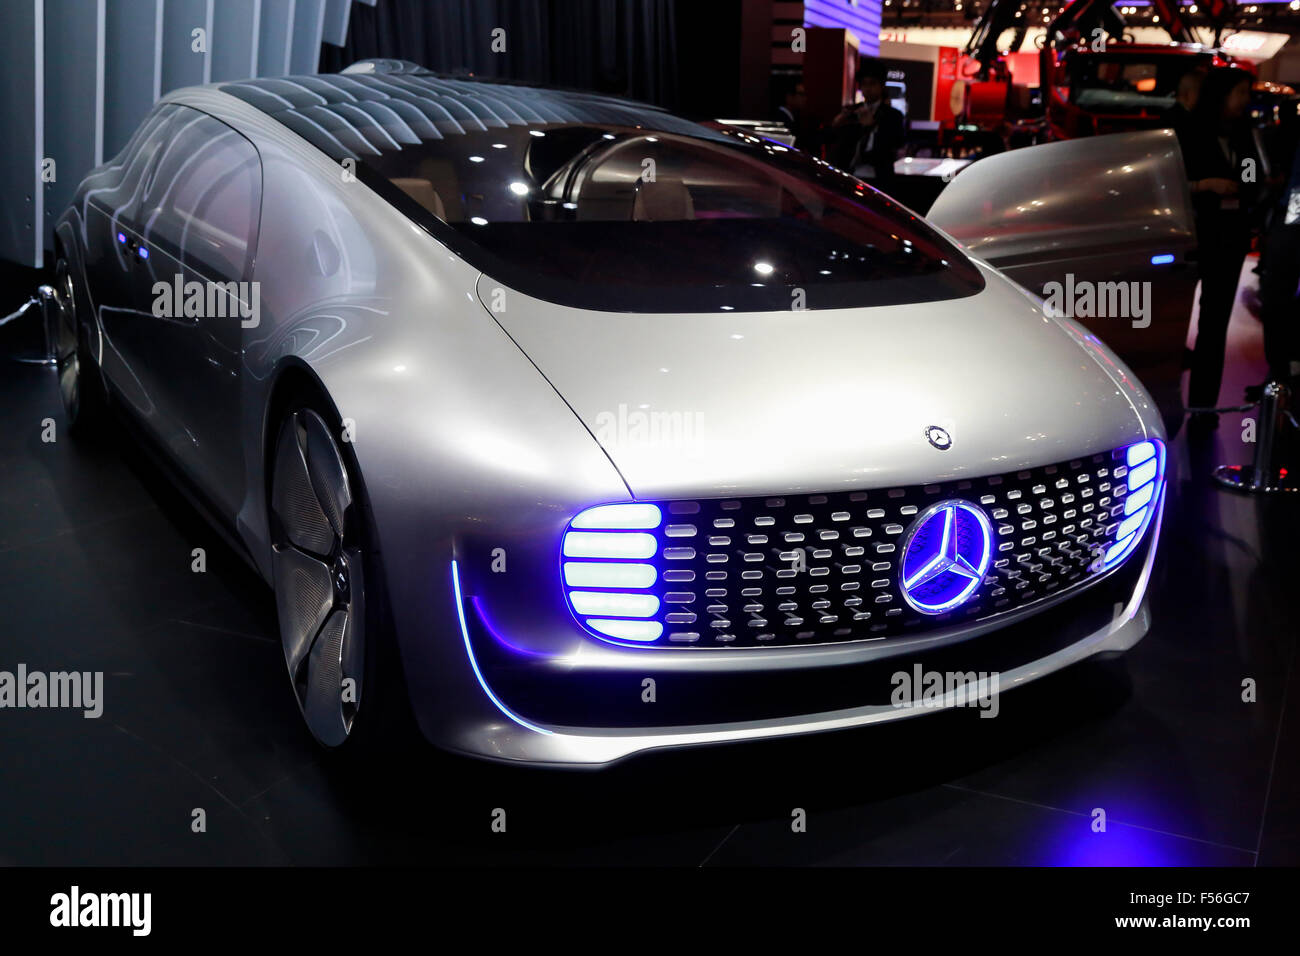 The New Mercedes Benz F015 Luxury In Motion Car On Display During